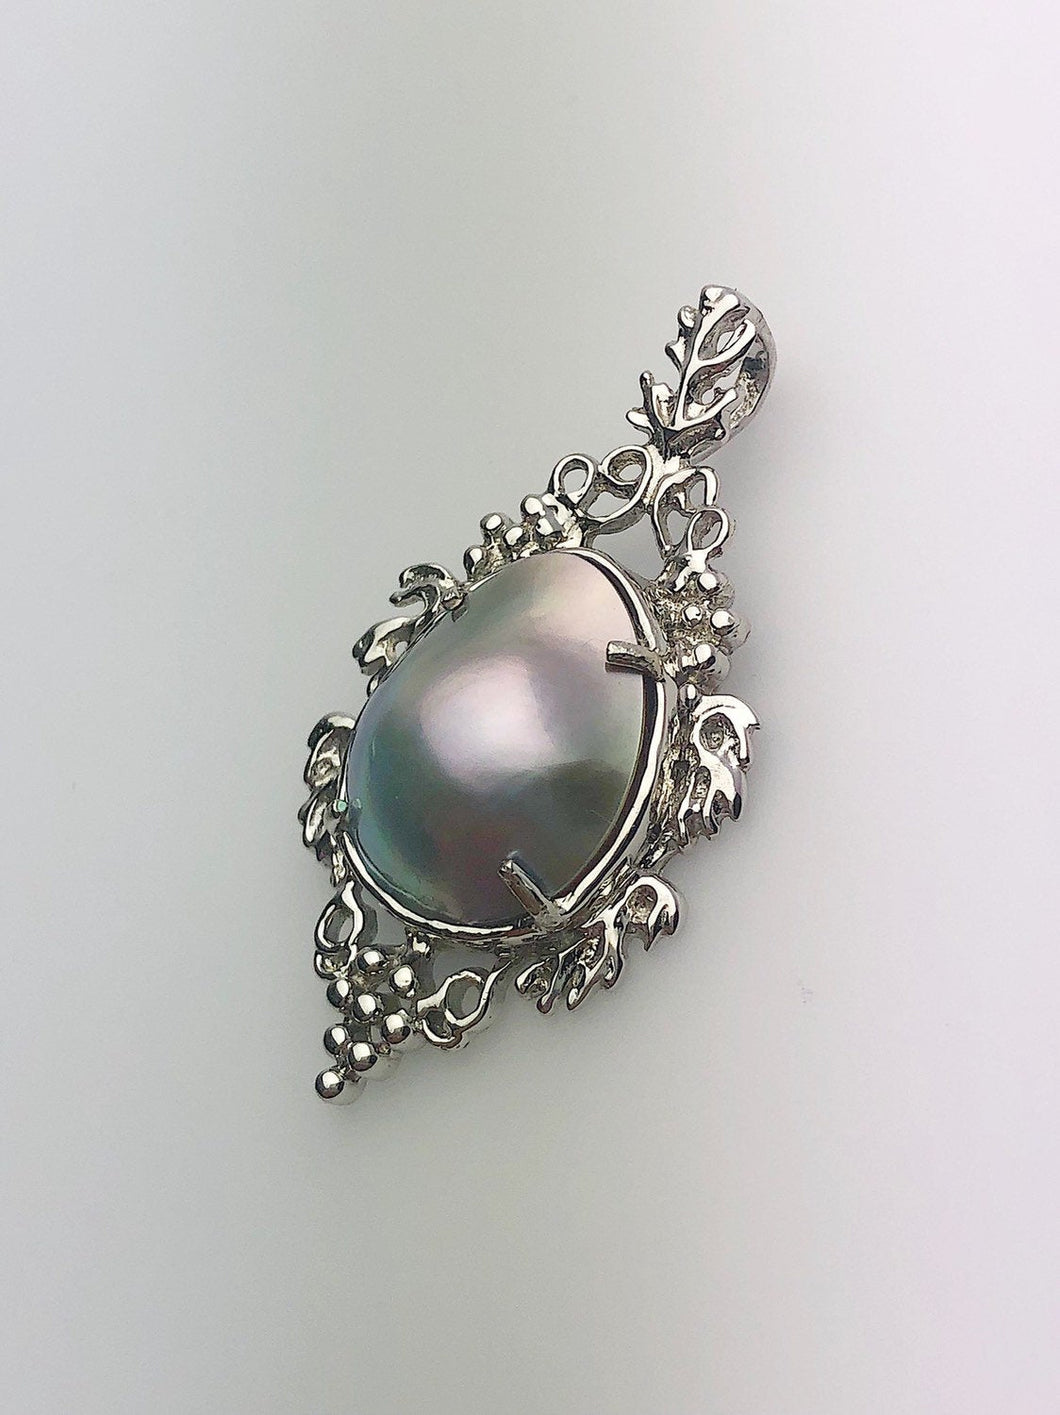 30% OFF - 14K White Gold Sea of Cortez Mabe Pearl Pendant, Made in Hawaii (#800)